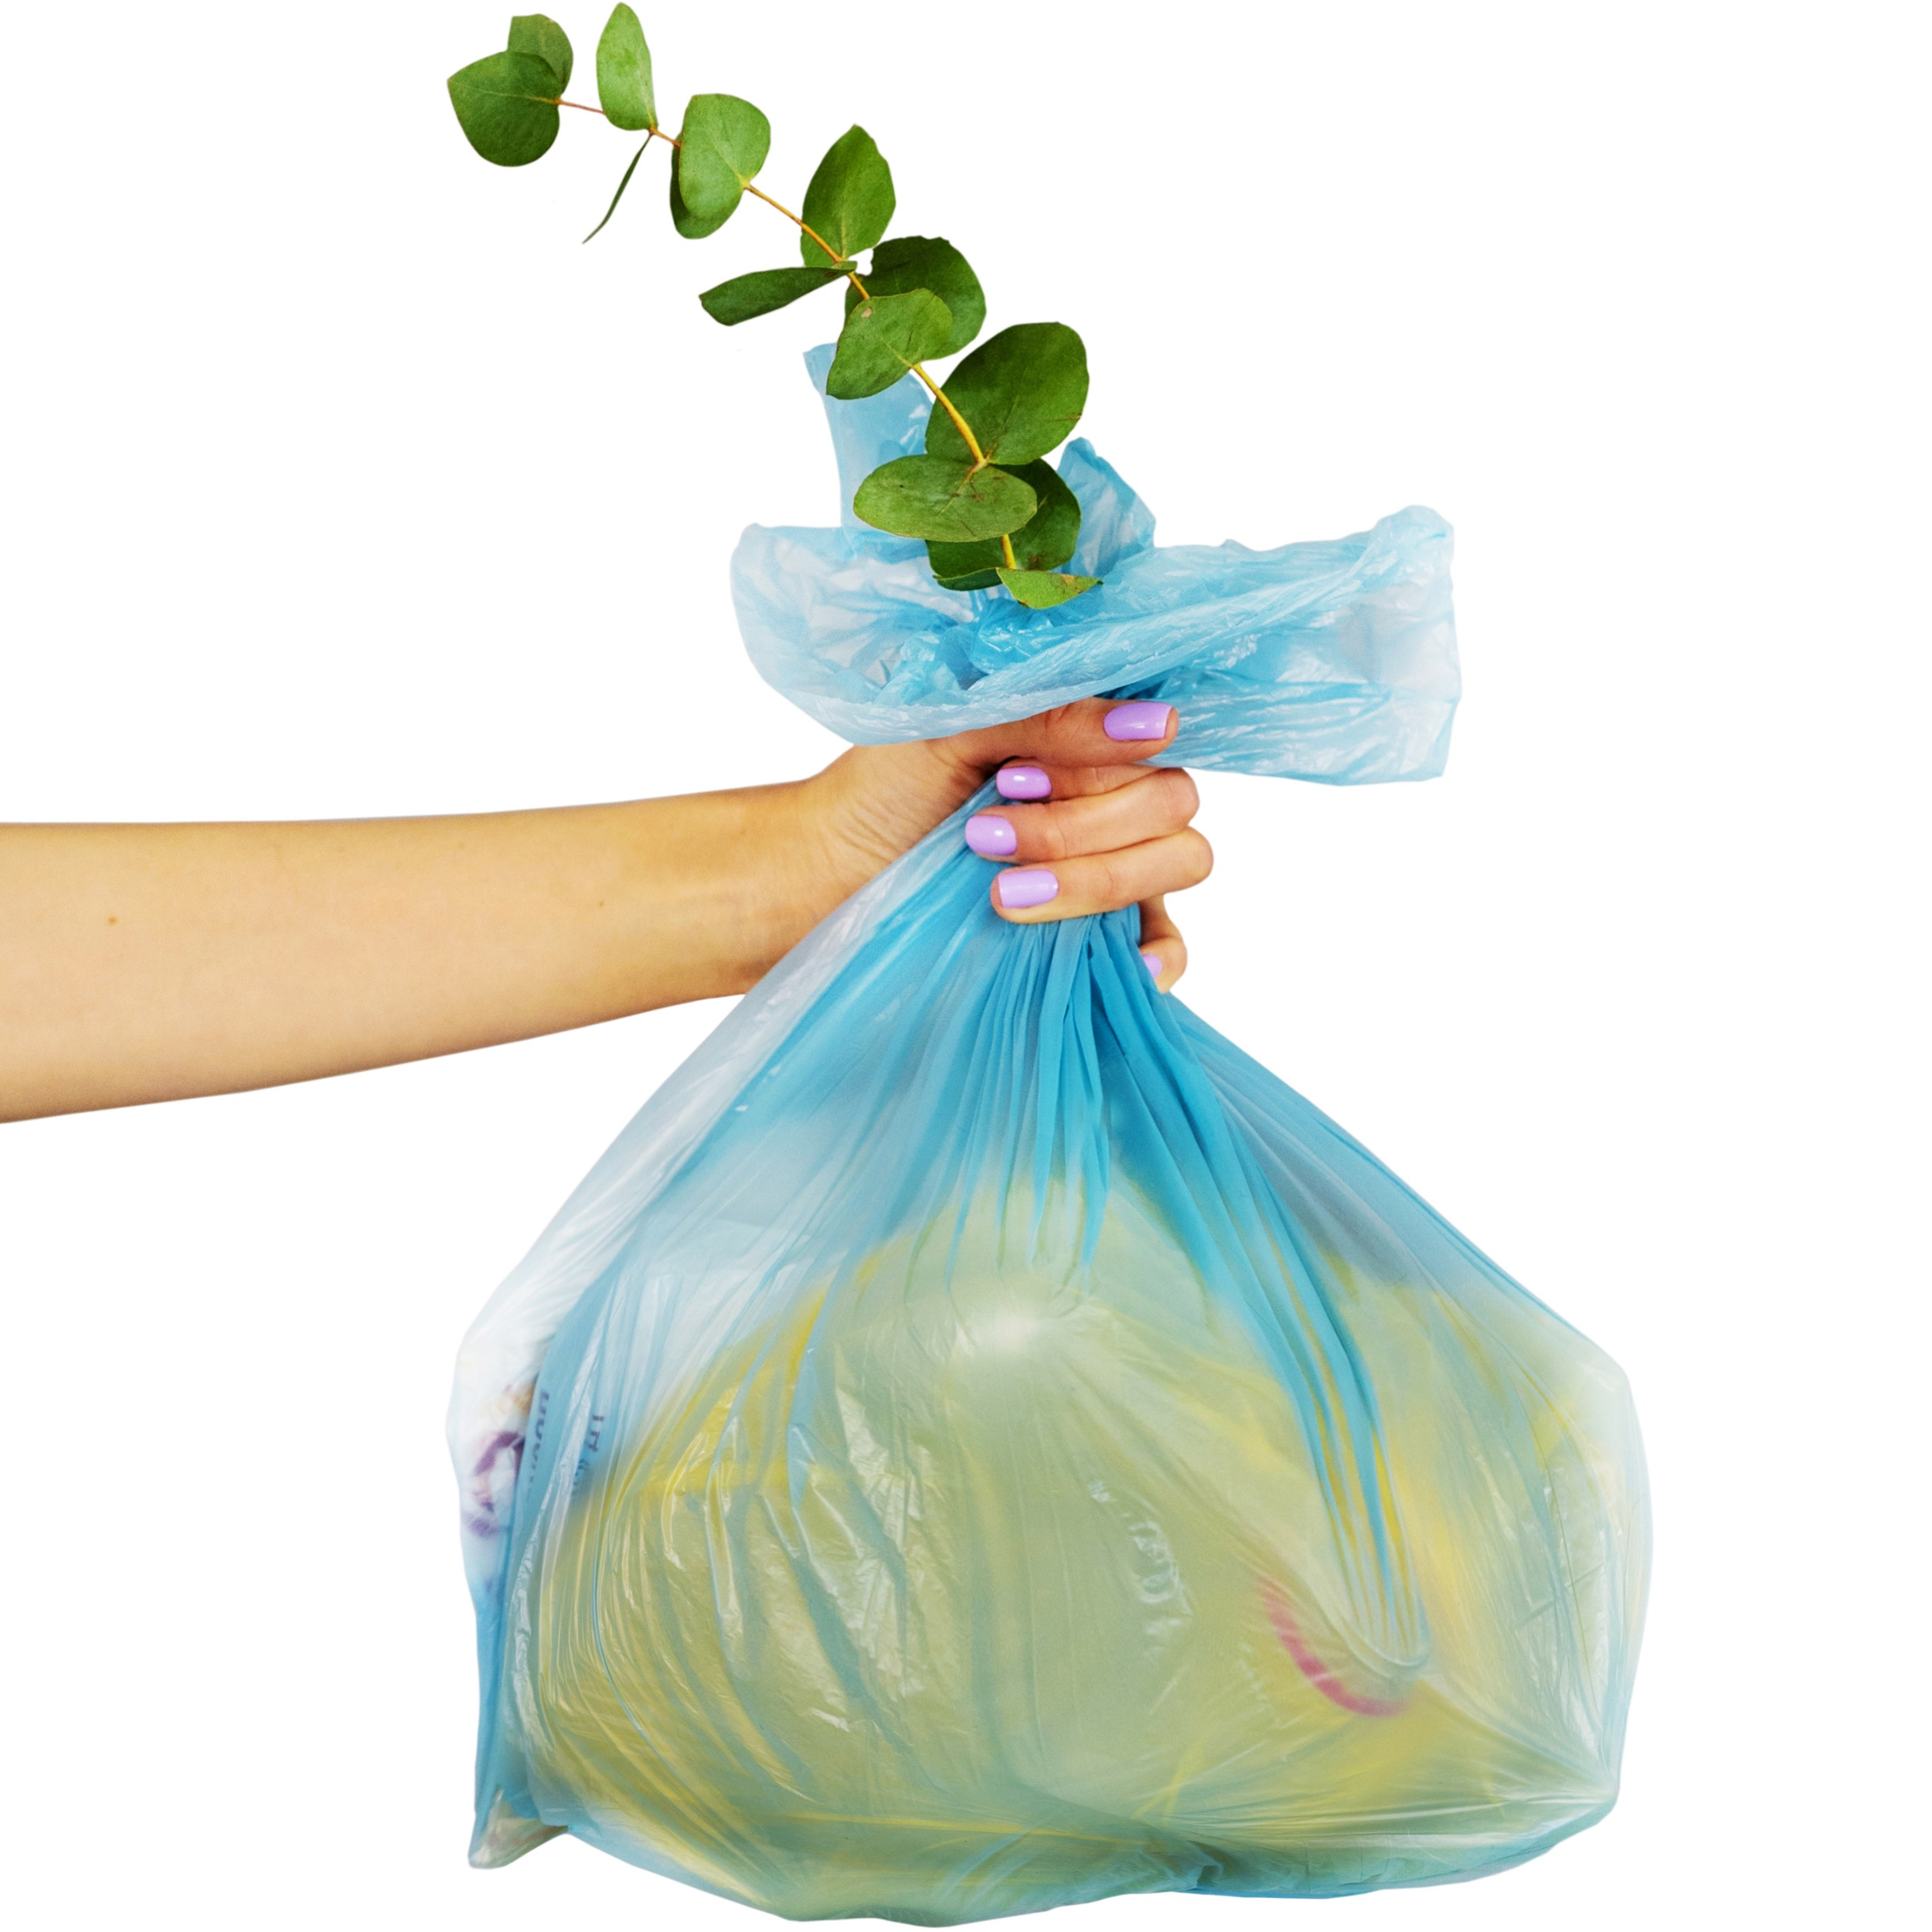 woman's hand holding a bag full of recycling with a green leafy plant coming out the top